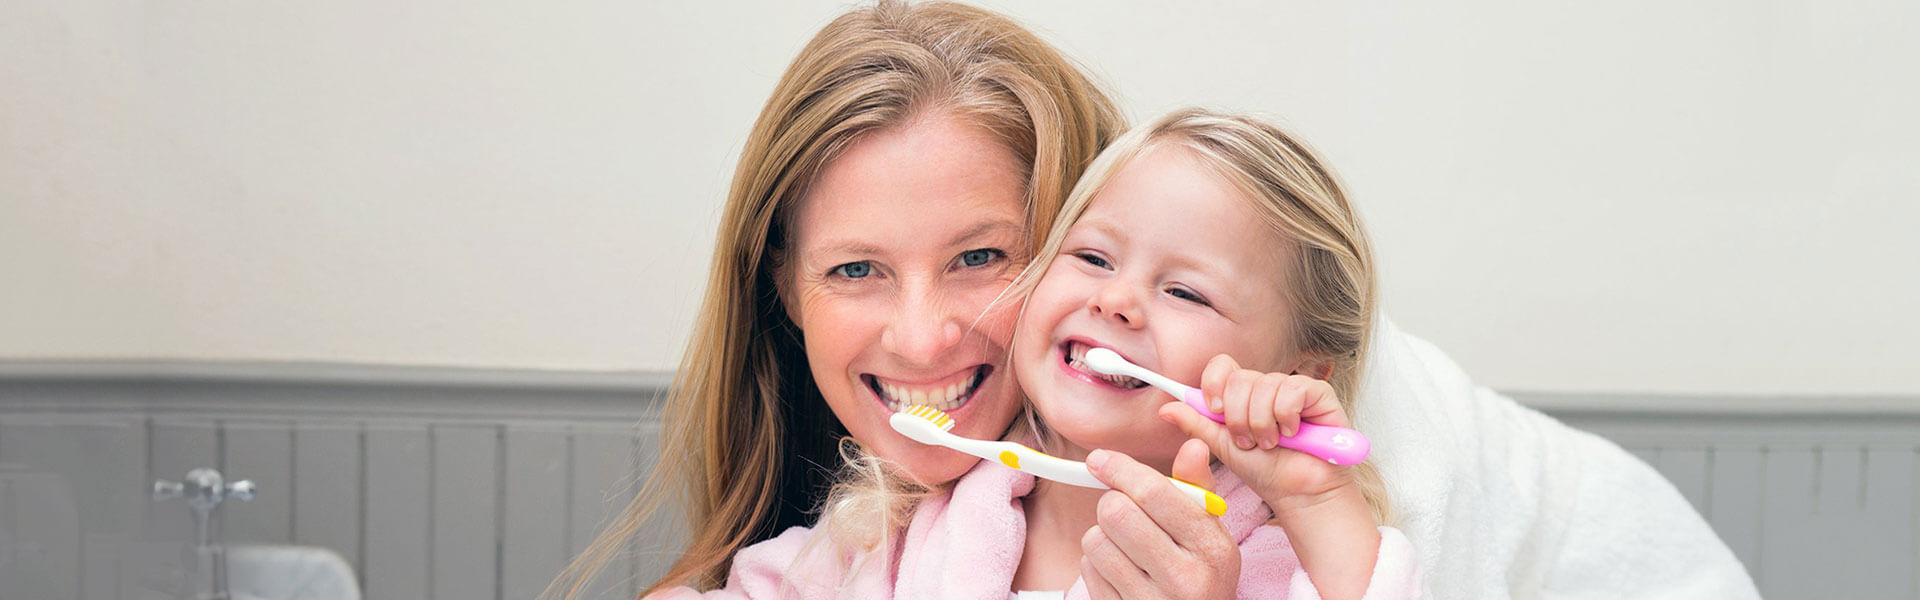 About Periodontal Dentistry in Lancaster, CA